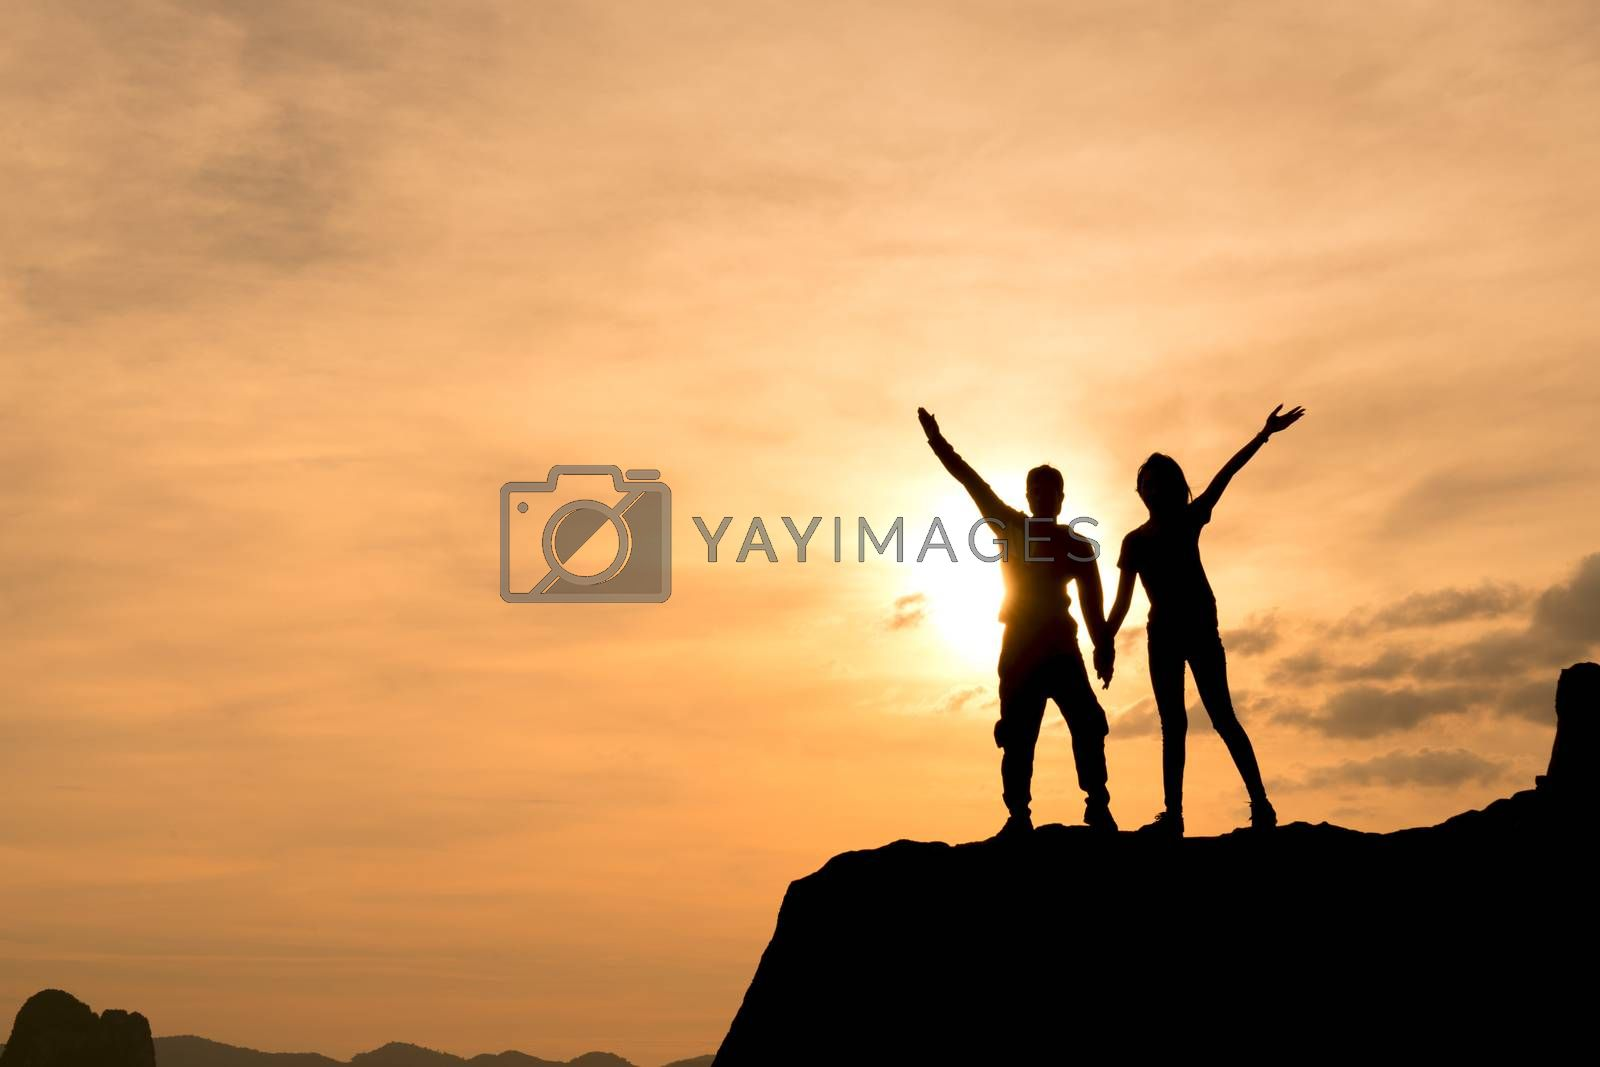 Succeeded in winning the sunset or sunrise, standing cheerfully with arms raised over the lovers' heads in celebration of reaching the top of the mountain peaks during trekking trips.